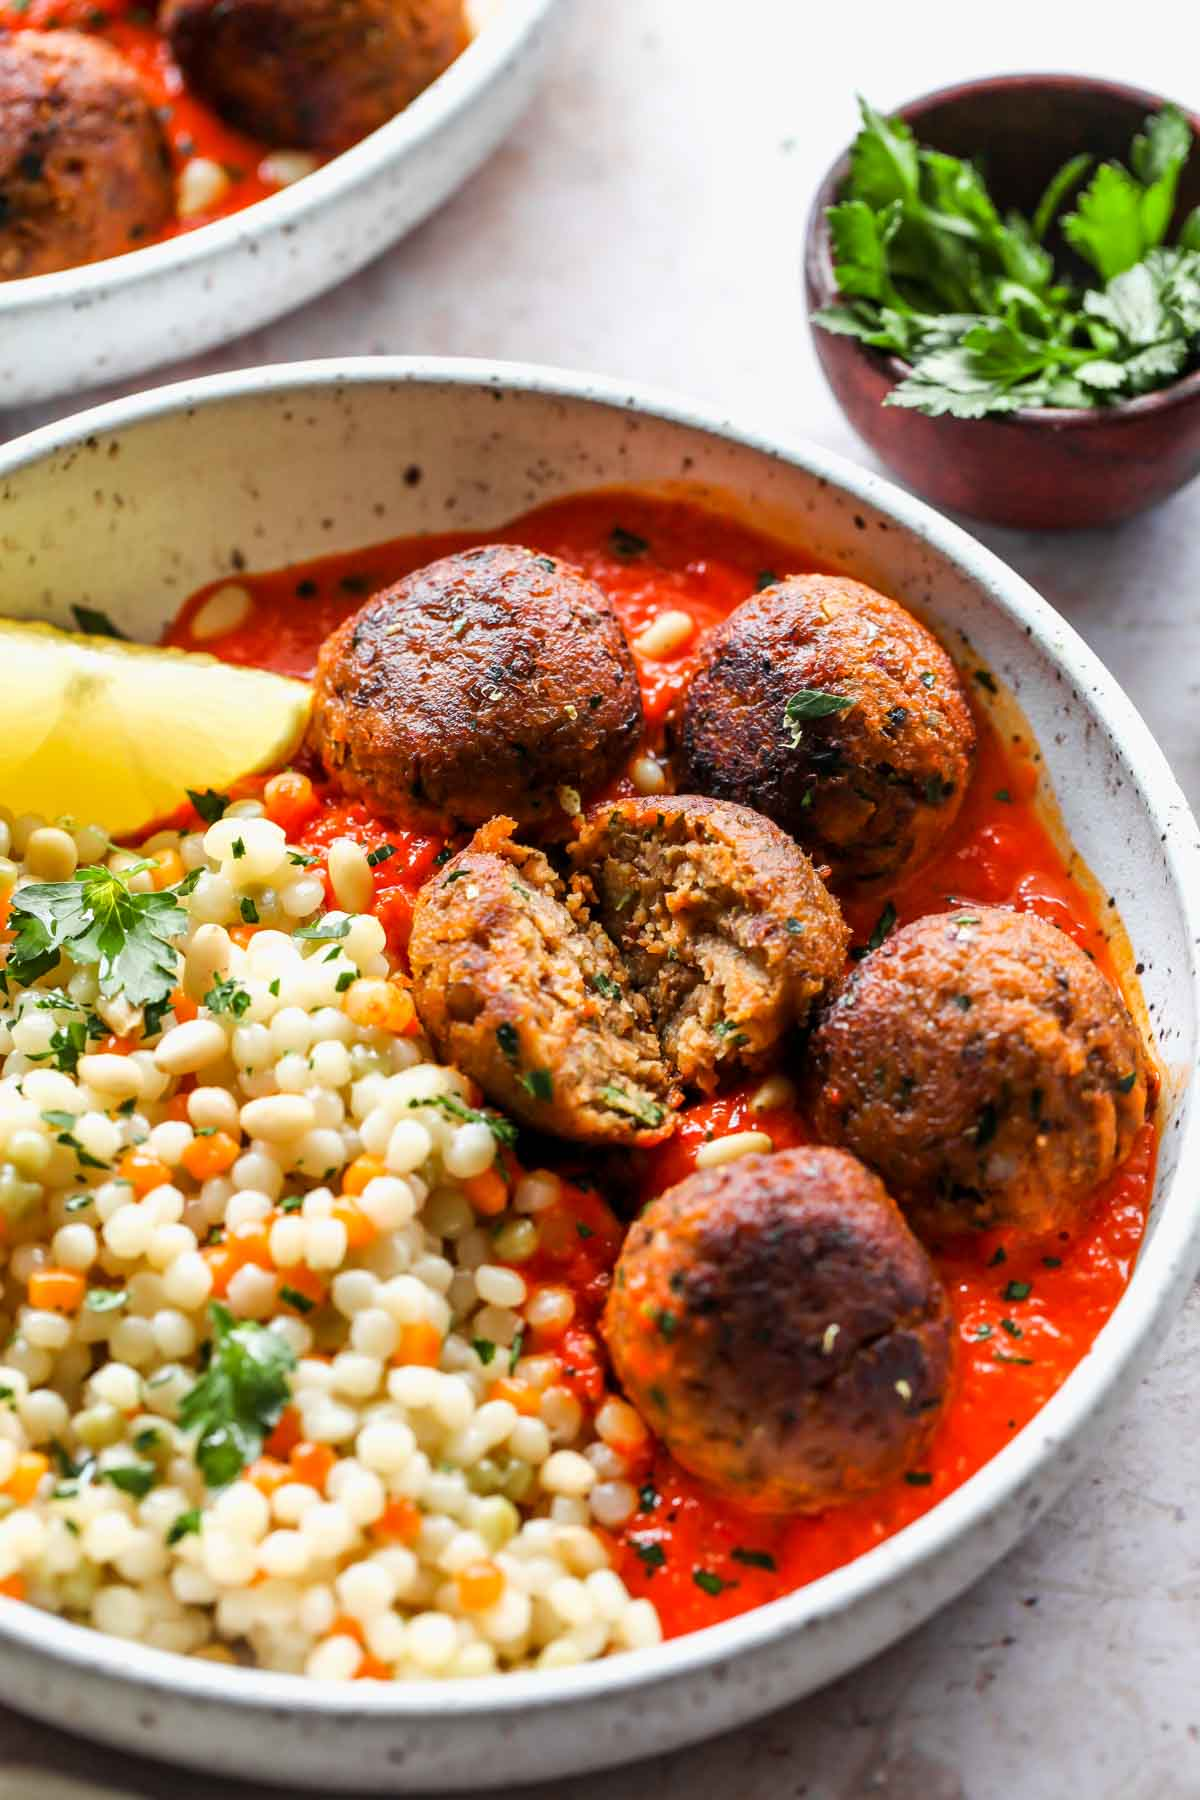 Lentil meatball being cut in half